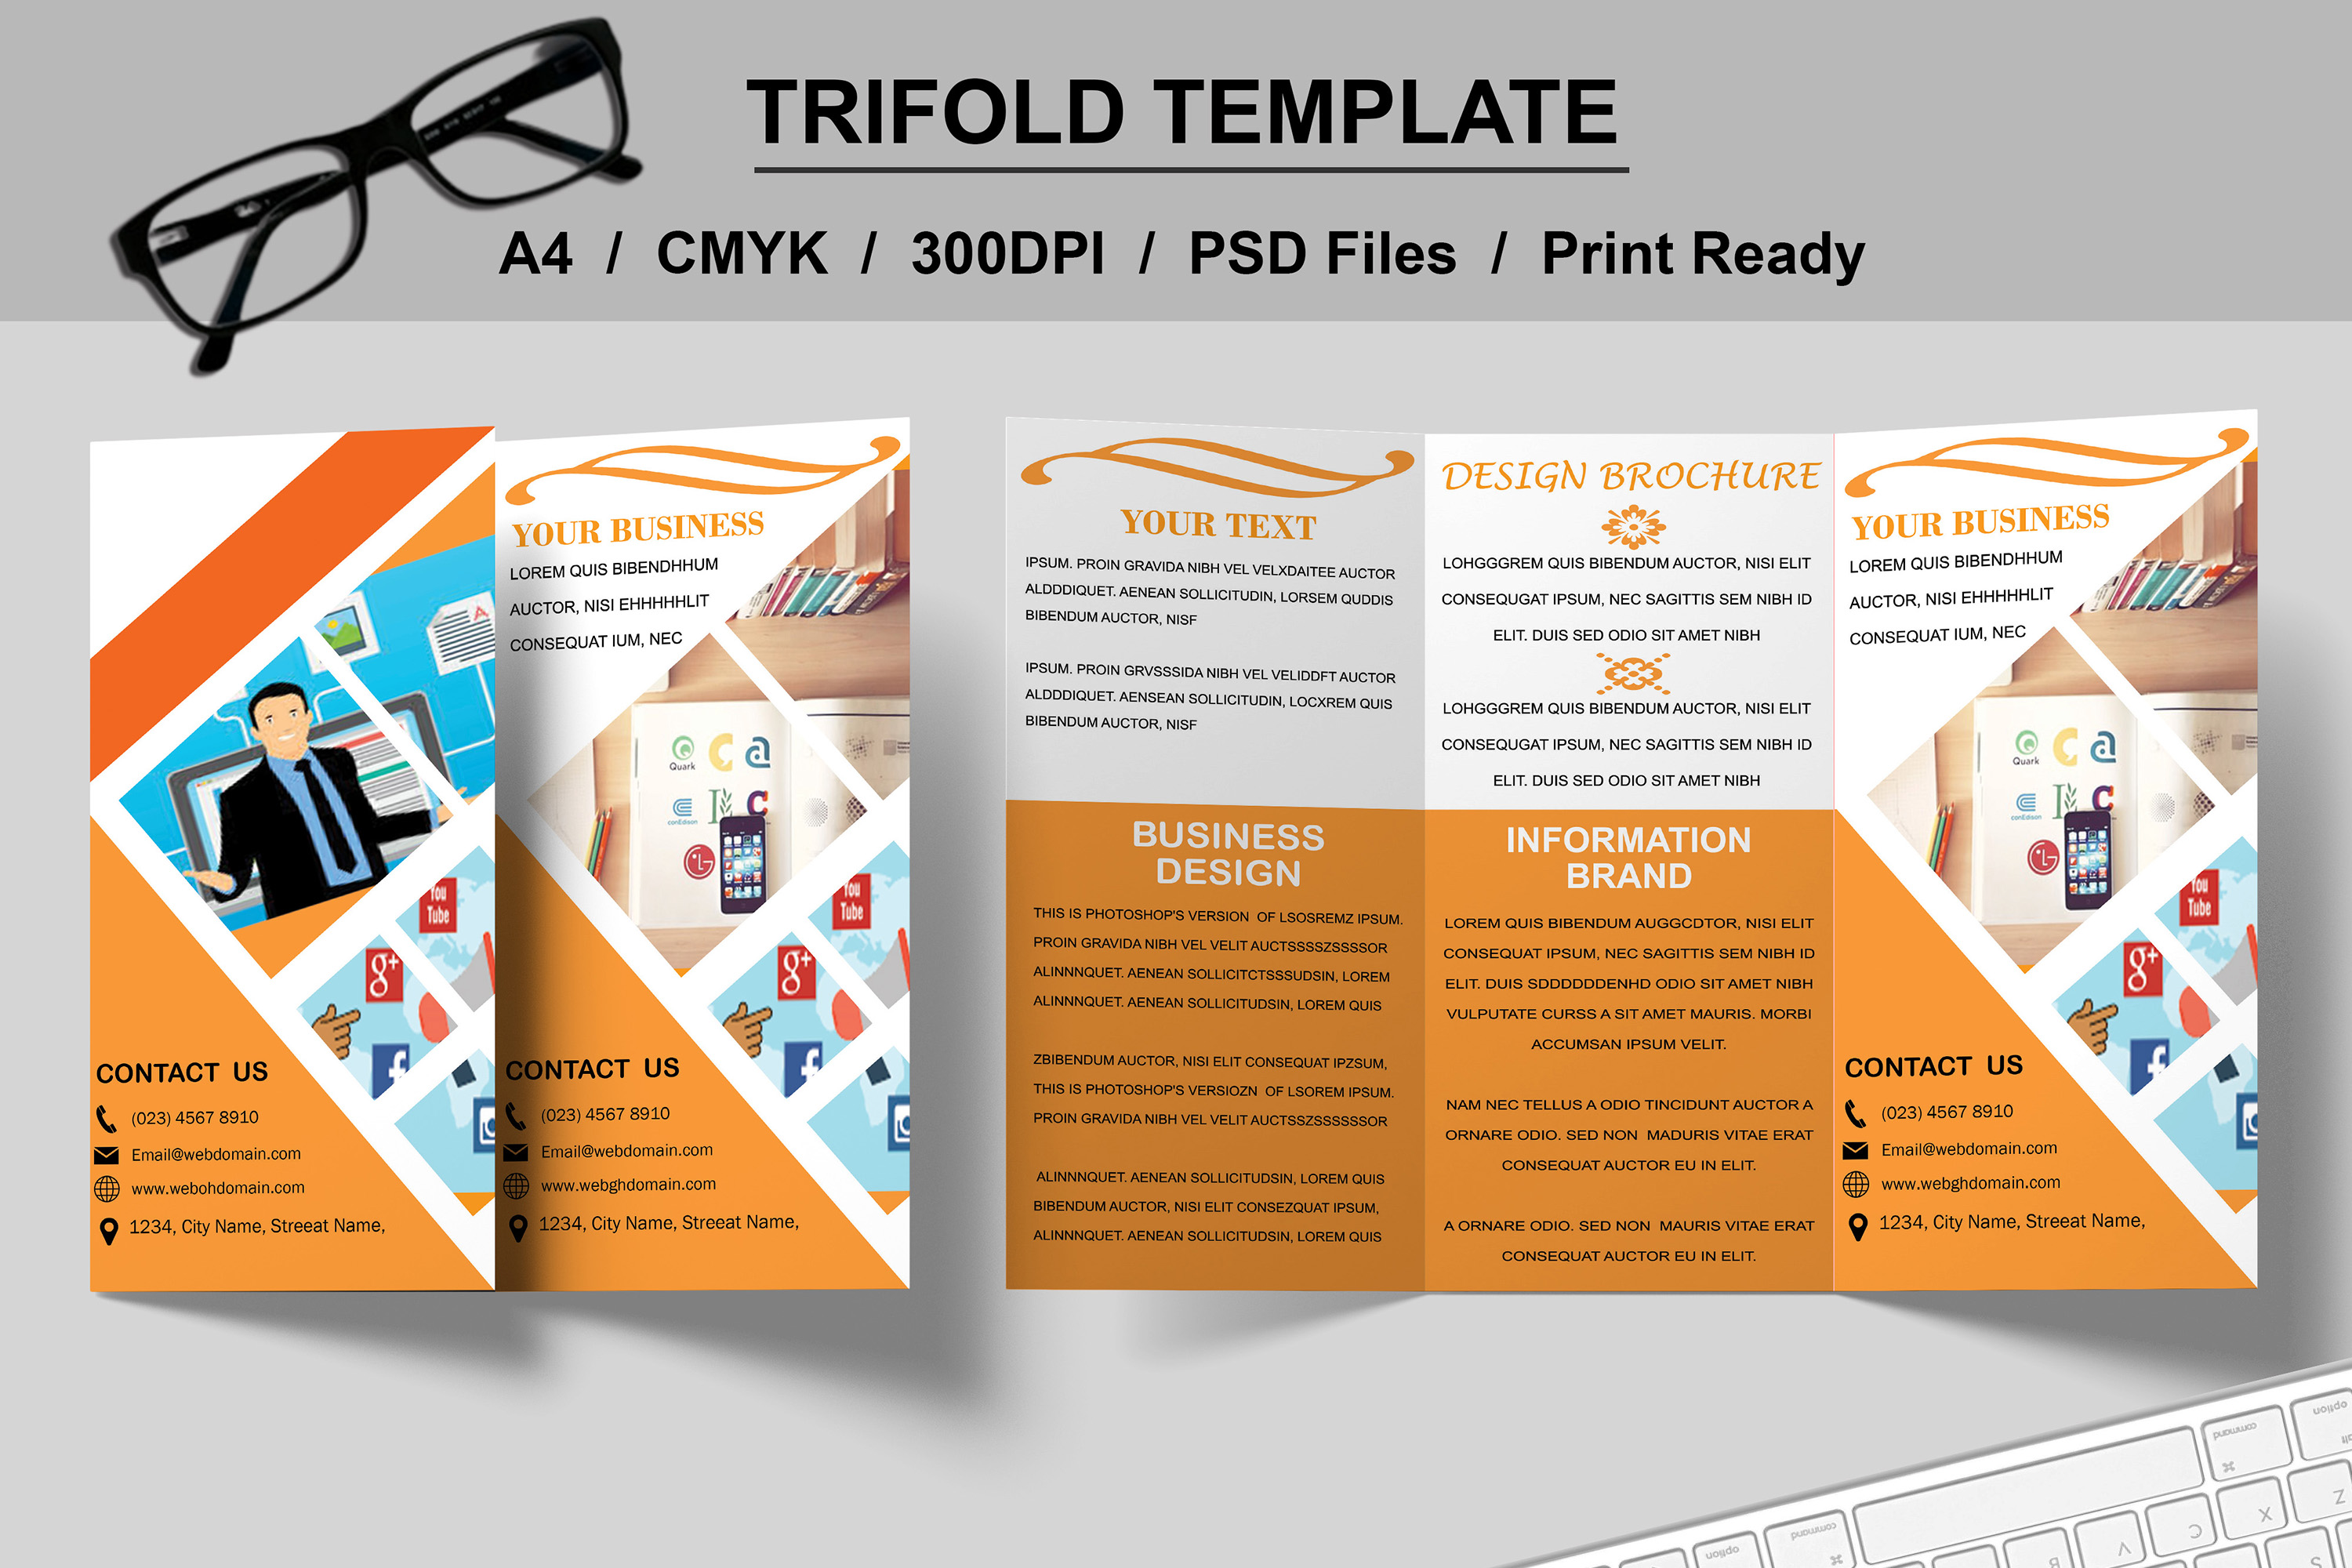 Trifold Brochure Template example image 4